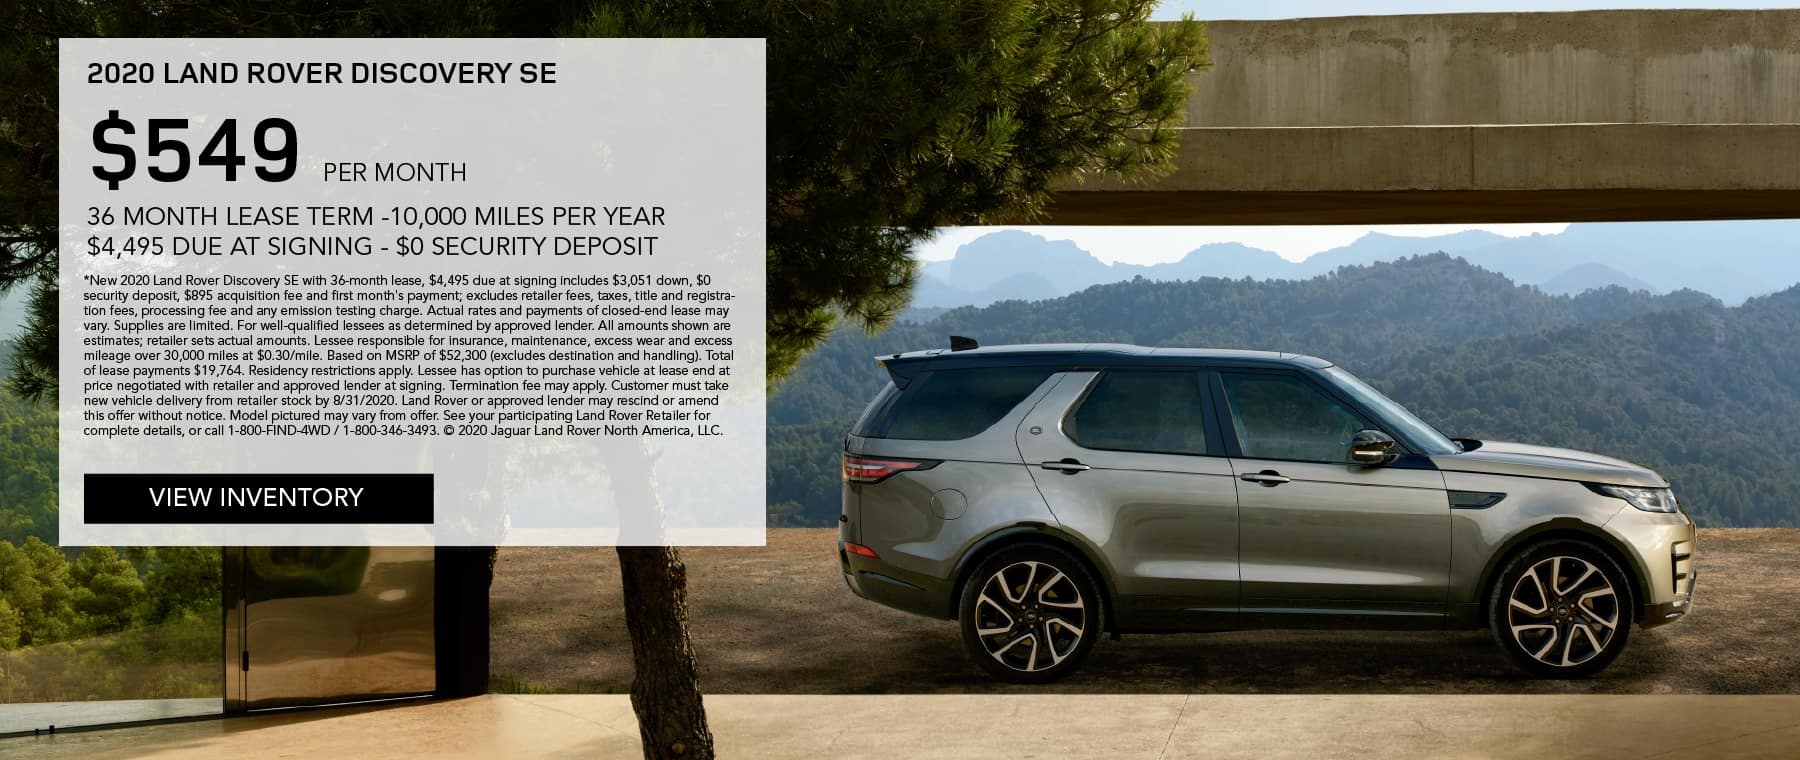 2020 LAND ROVER DISCOVERY SE. $549 PER MONTH. 36 MONTH LEASE TERM. $4,495 CASH DUE AT SIGNING. $0 SECURITY DEPOSIT. 10,000 MILES PER YEAR. EXCLUDES RETAILER FEES, TAXES, TITLE AND REGISTRATION FEES, PROCESSING FEE AND ANY EMISSION TESTING CHARGE. ENDS 8/31/2020. VIEW INVENTORY. SILVER DISCOVERY SE PARKED IN DRIVEWAY IN MOUNTAINS.